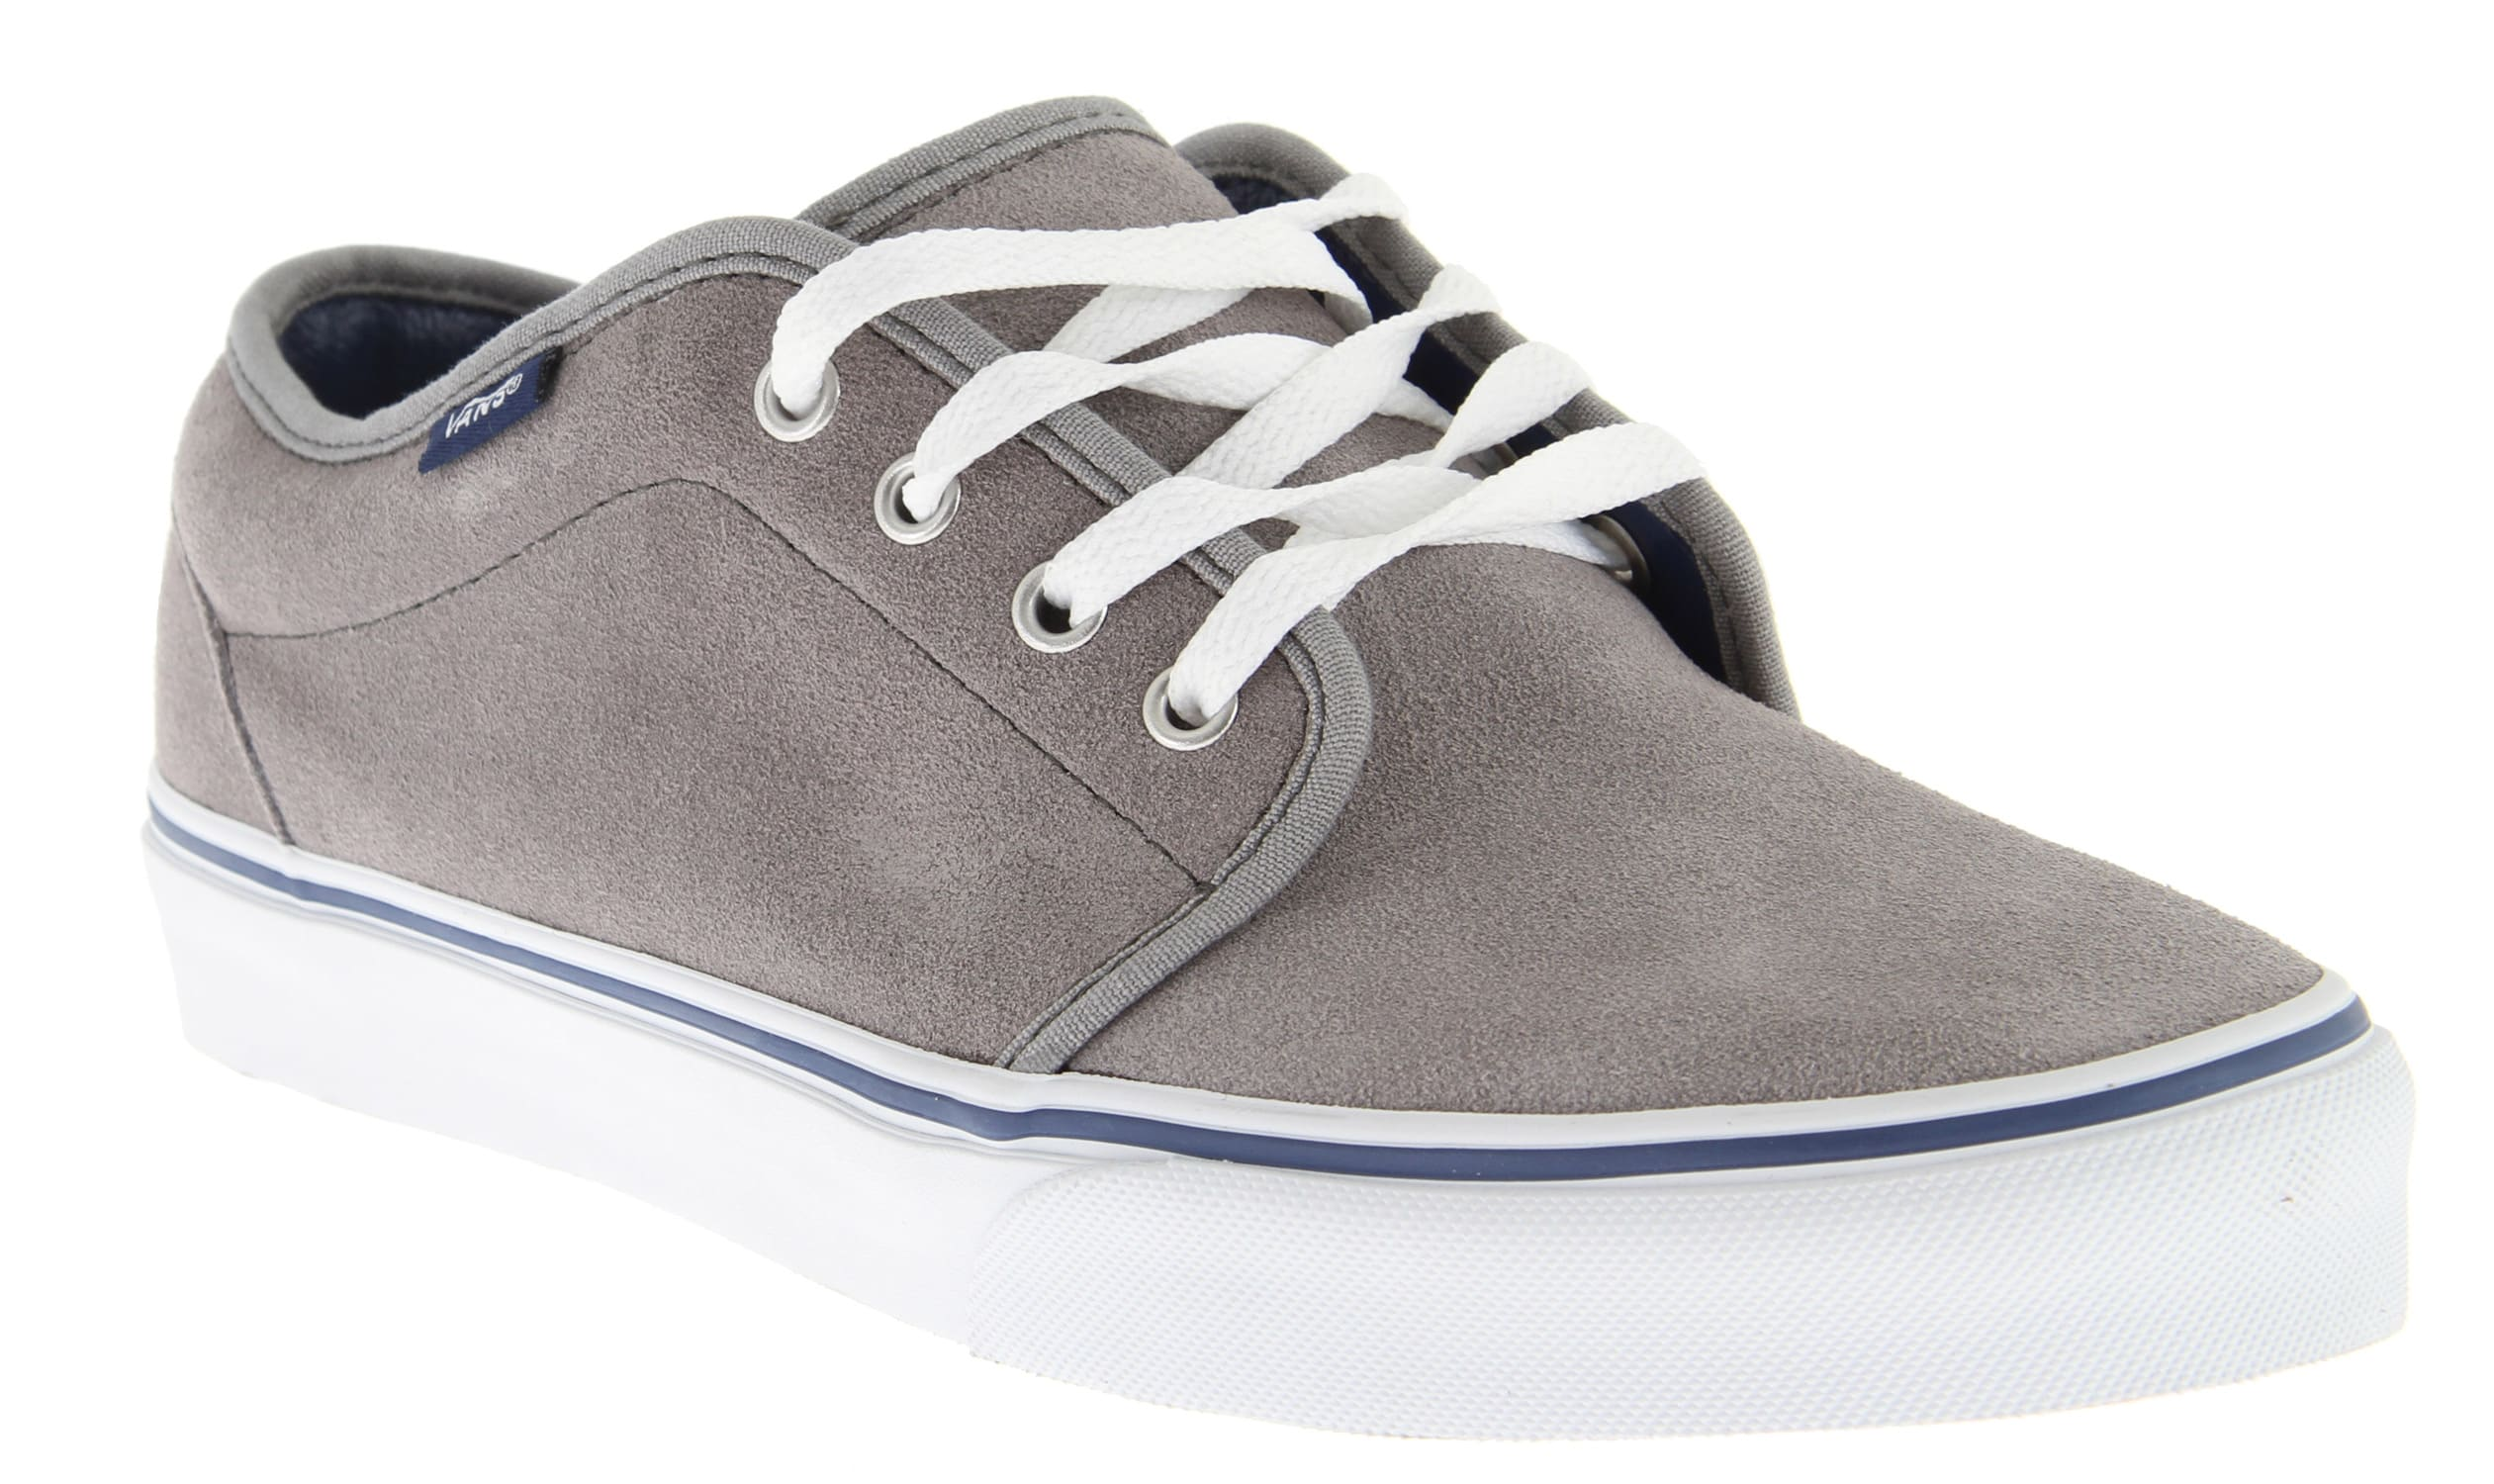 On Sale Vans 106 Vulcanized Skate Shoes up to 70% off